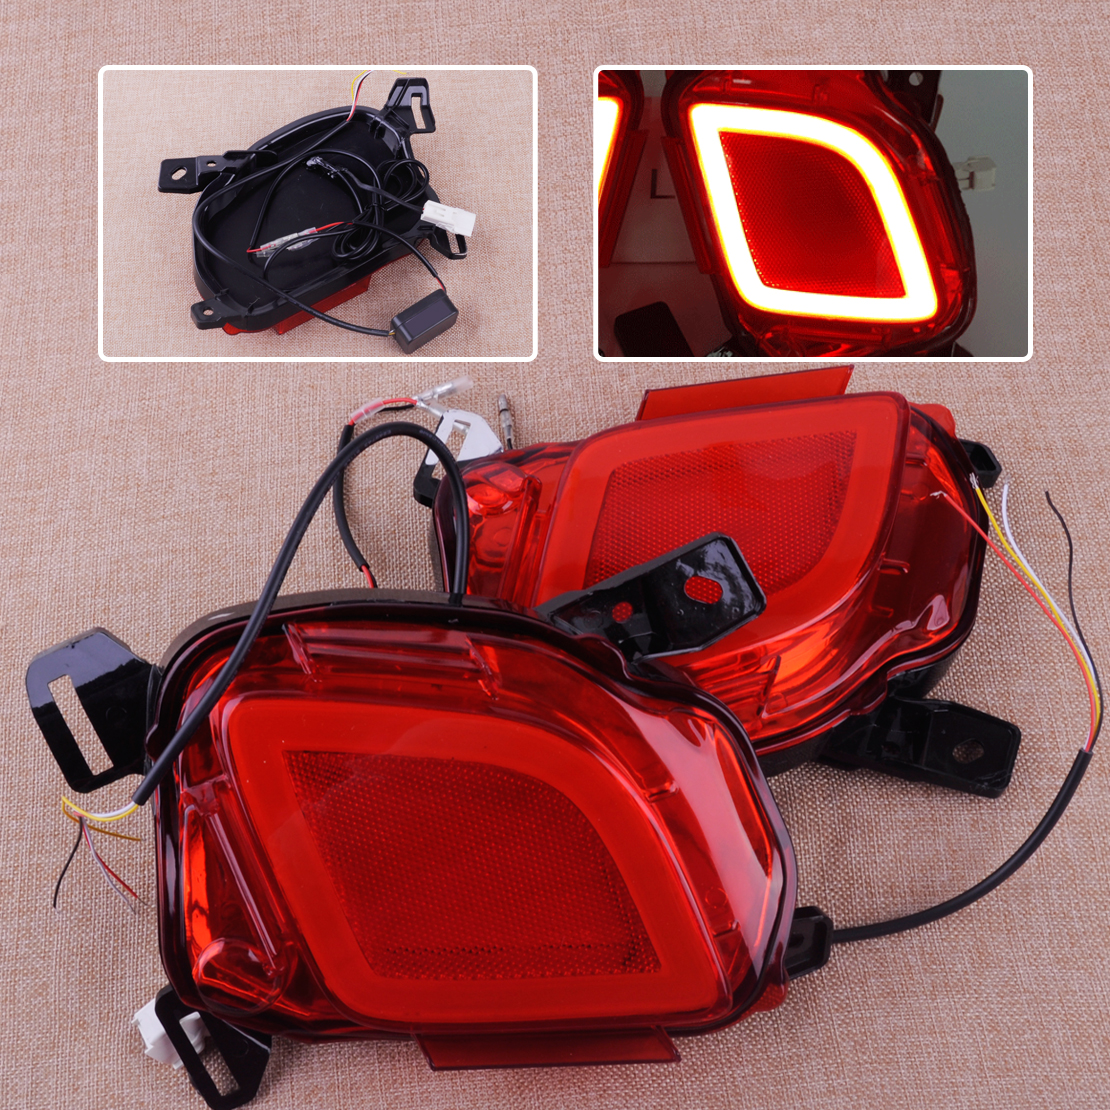 CITALL 2pcs LED Rear Bumper Brake Tail Lights Turn Signal Lamps Daytime Running Light Fit For Toyota Highlander 2015 2016 2017 led rear bumper warning lights car brake lamp cob running light led turn light for honda civic 2016 one pair